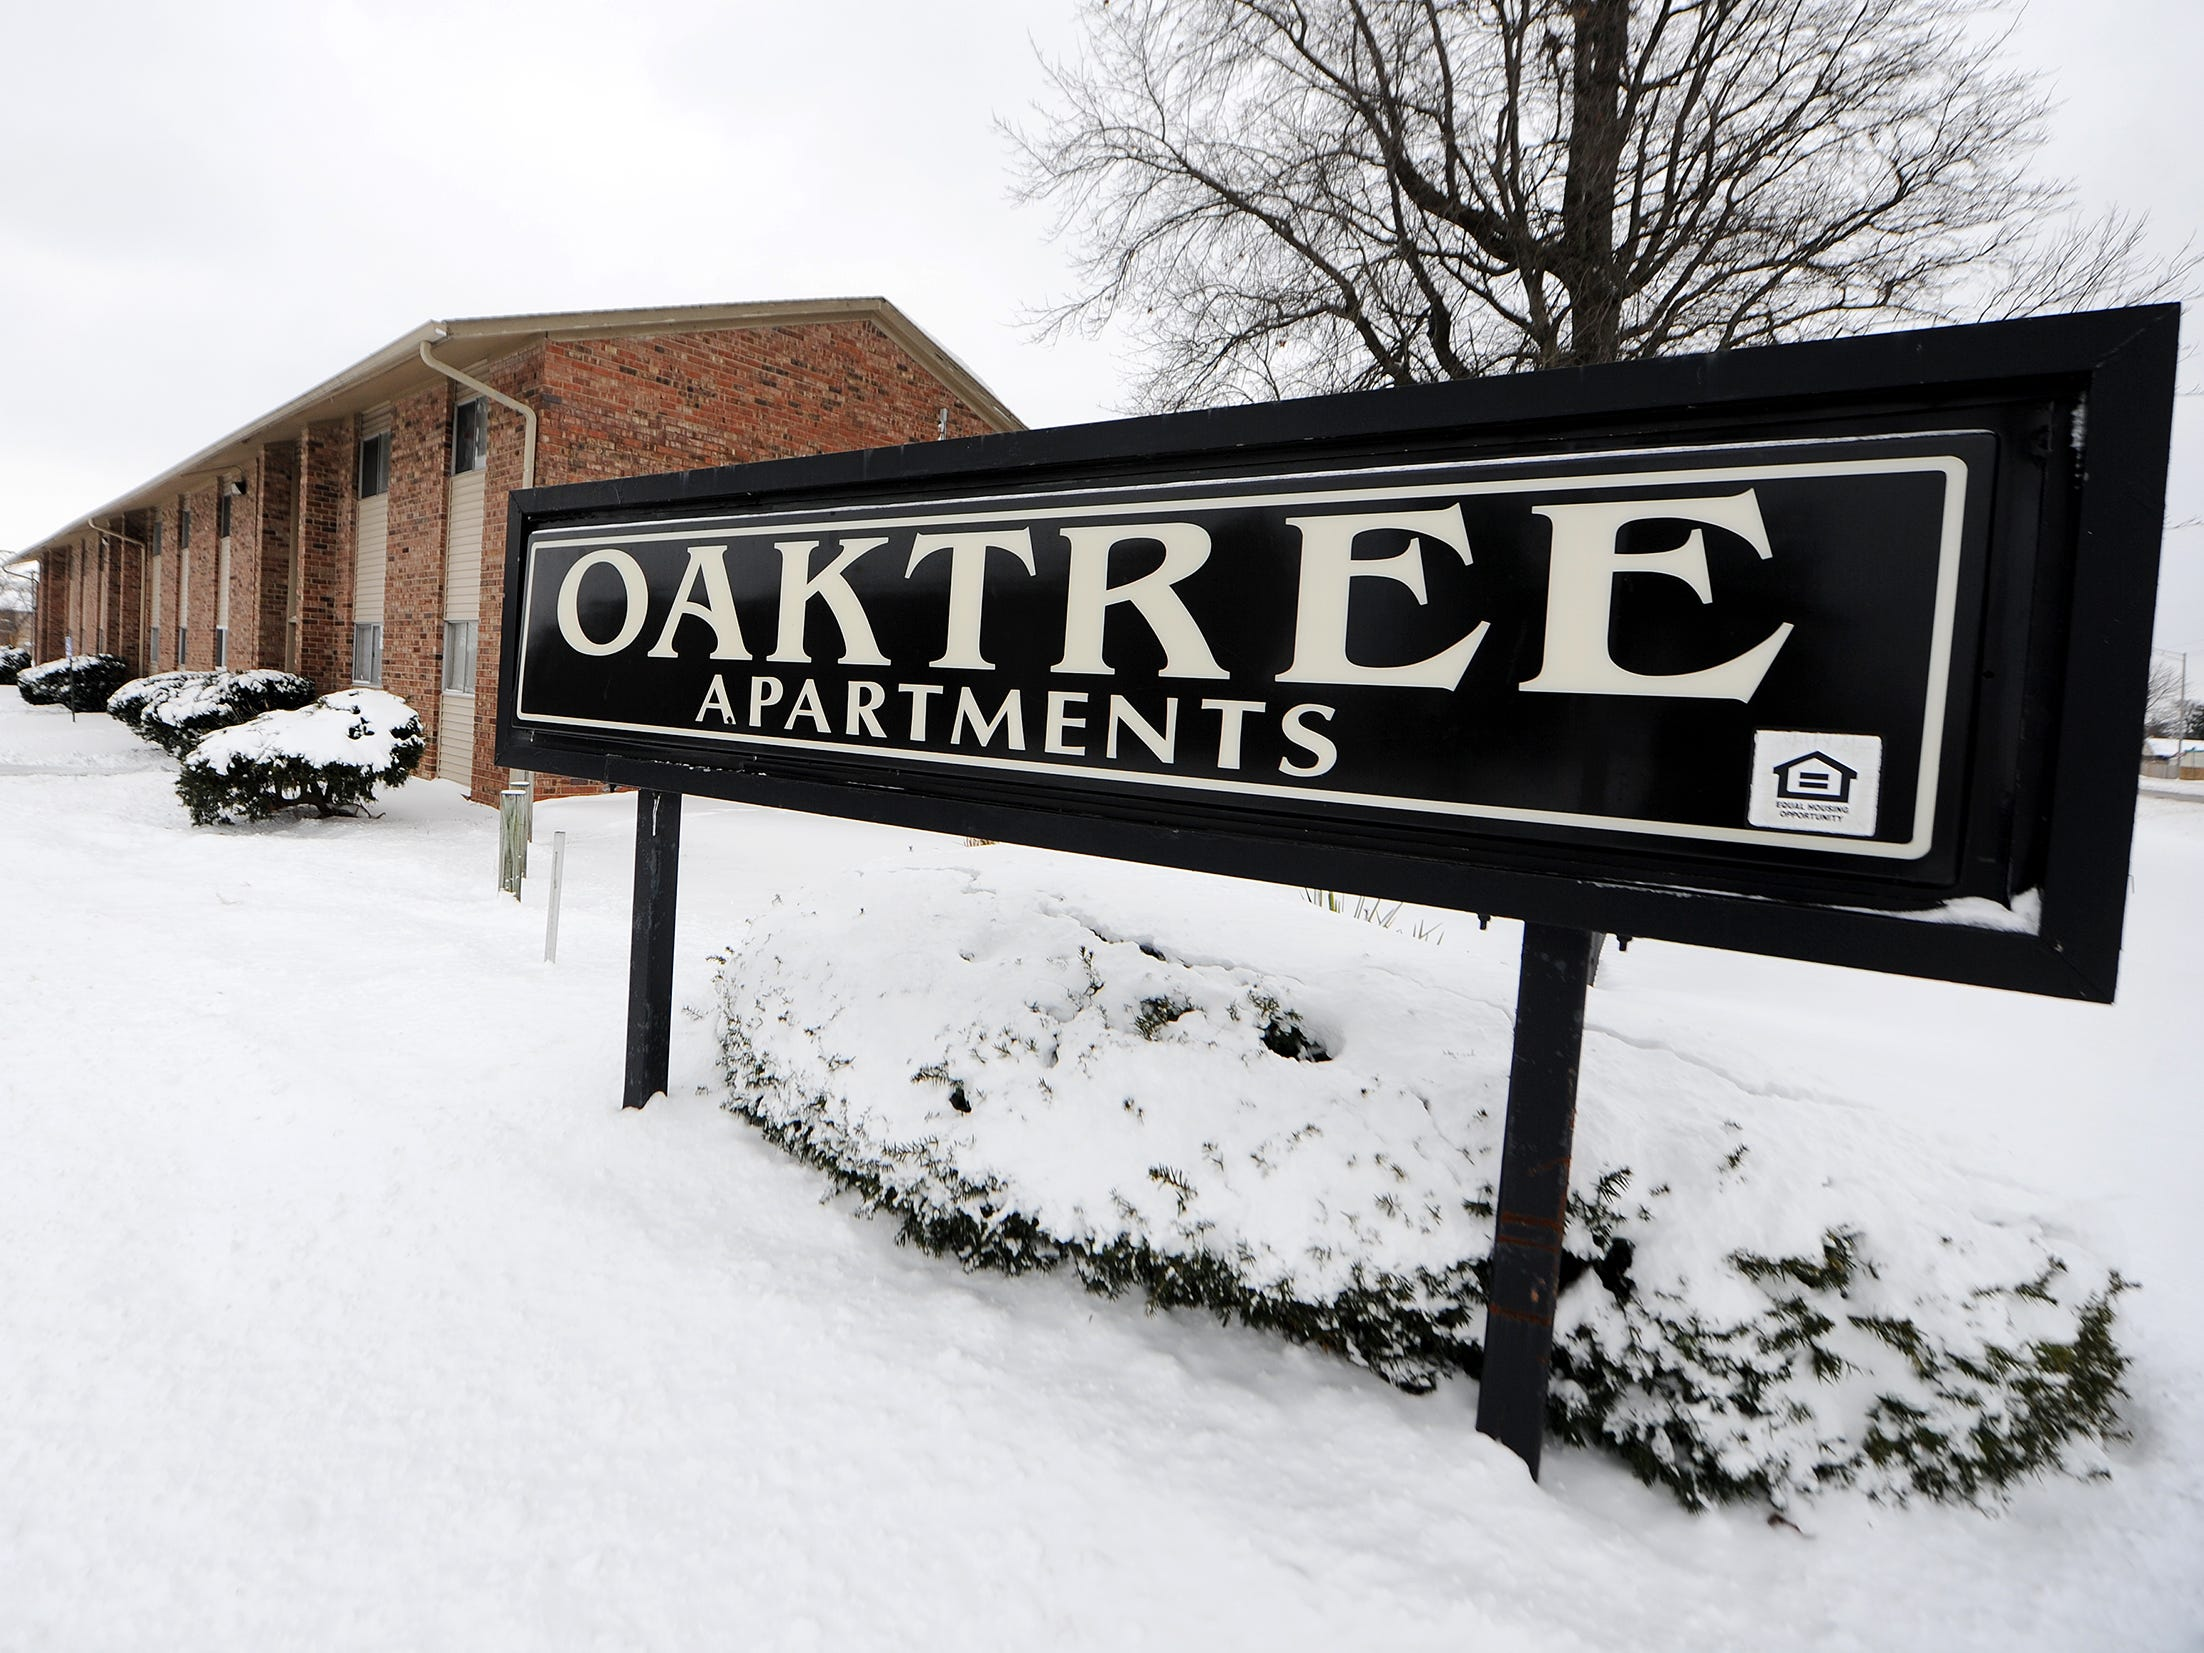 Indianapolis to spend $1.28M to demolish Oaktree Apartments, but decision came with a fight